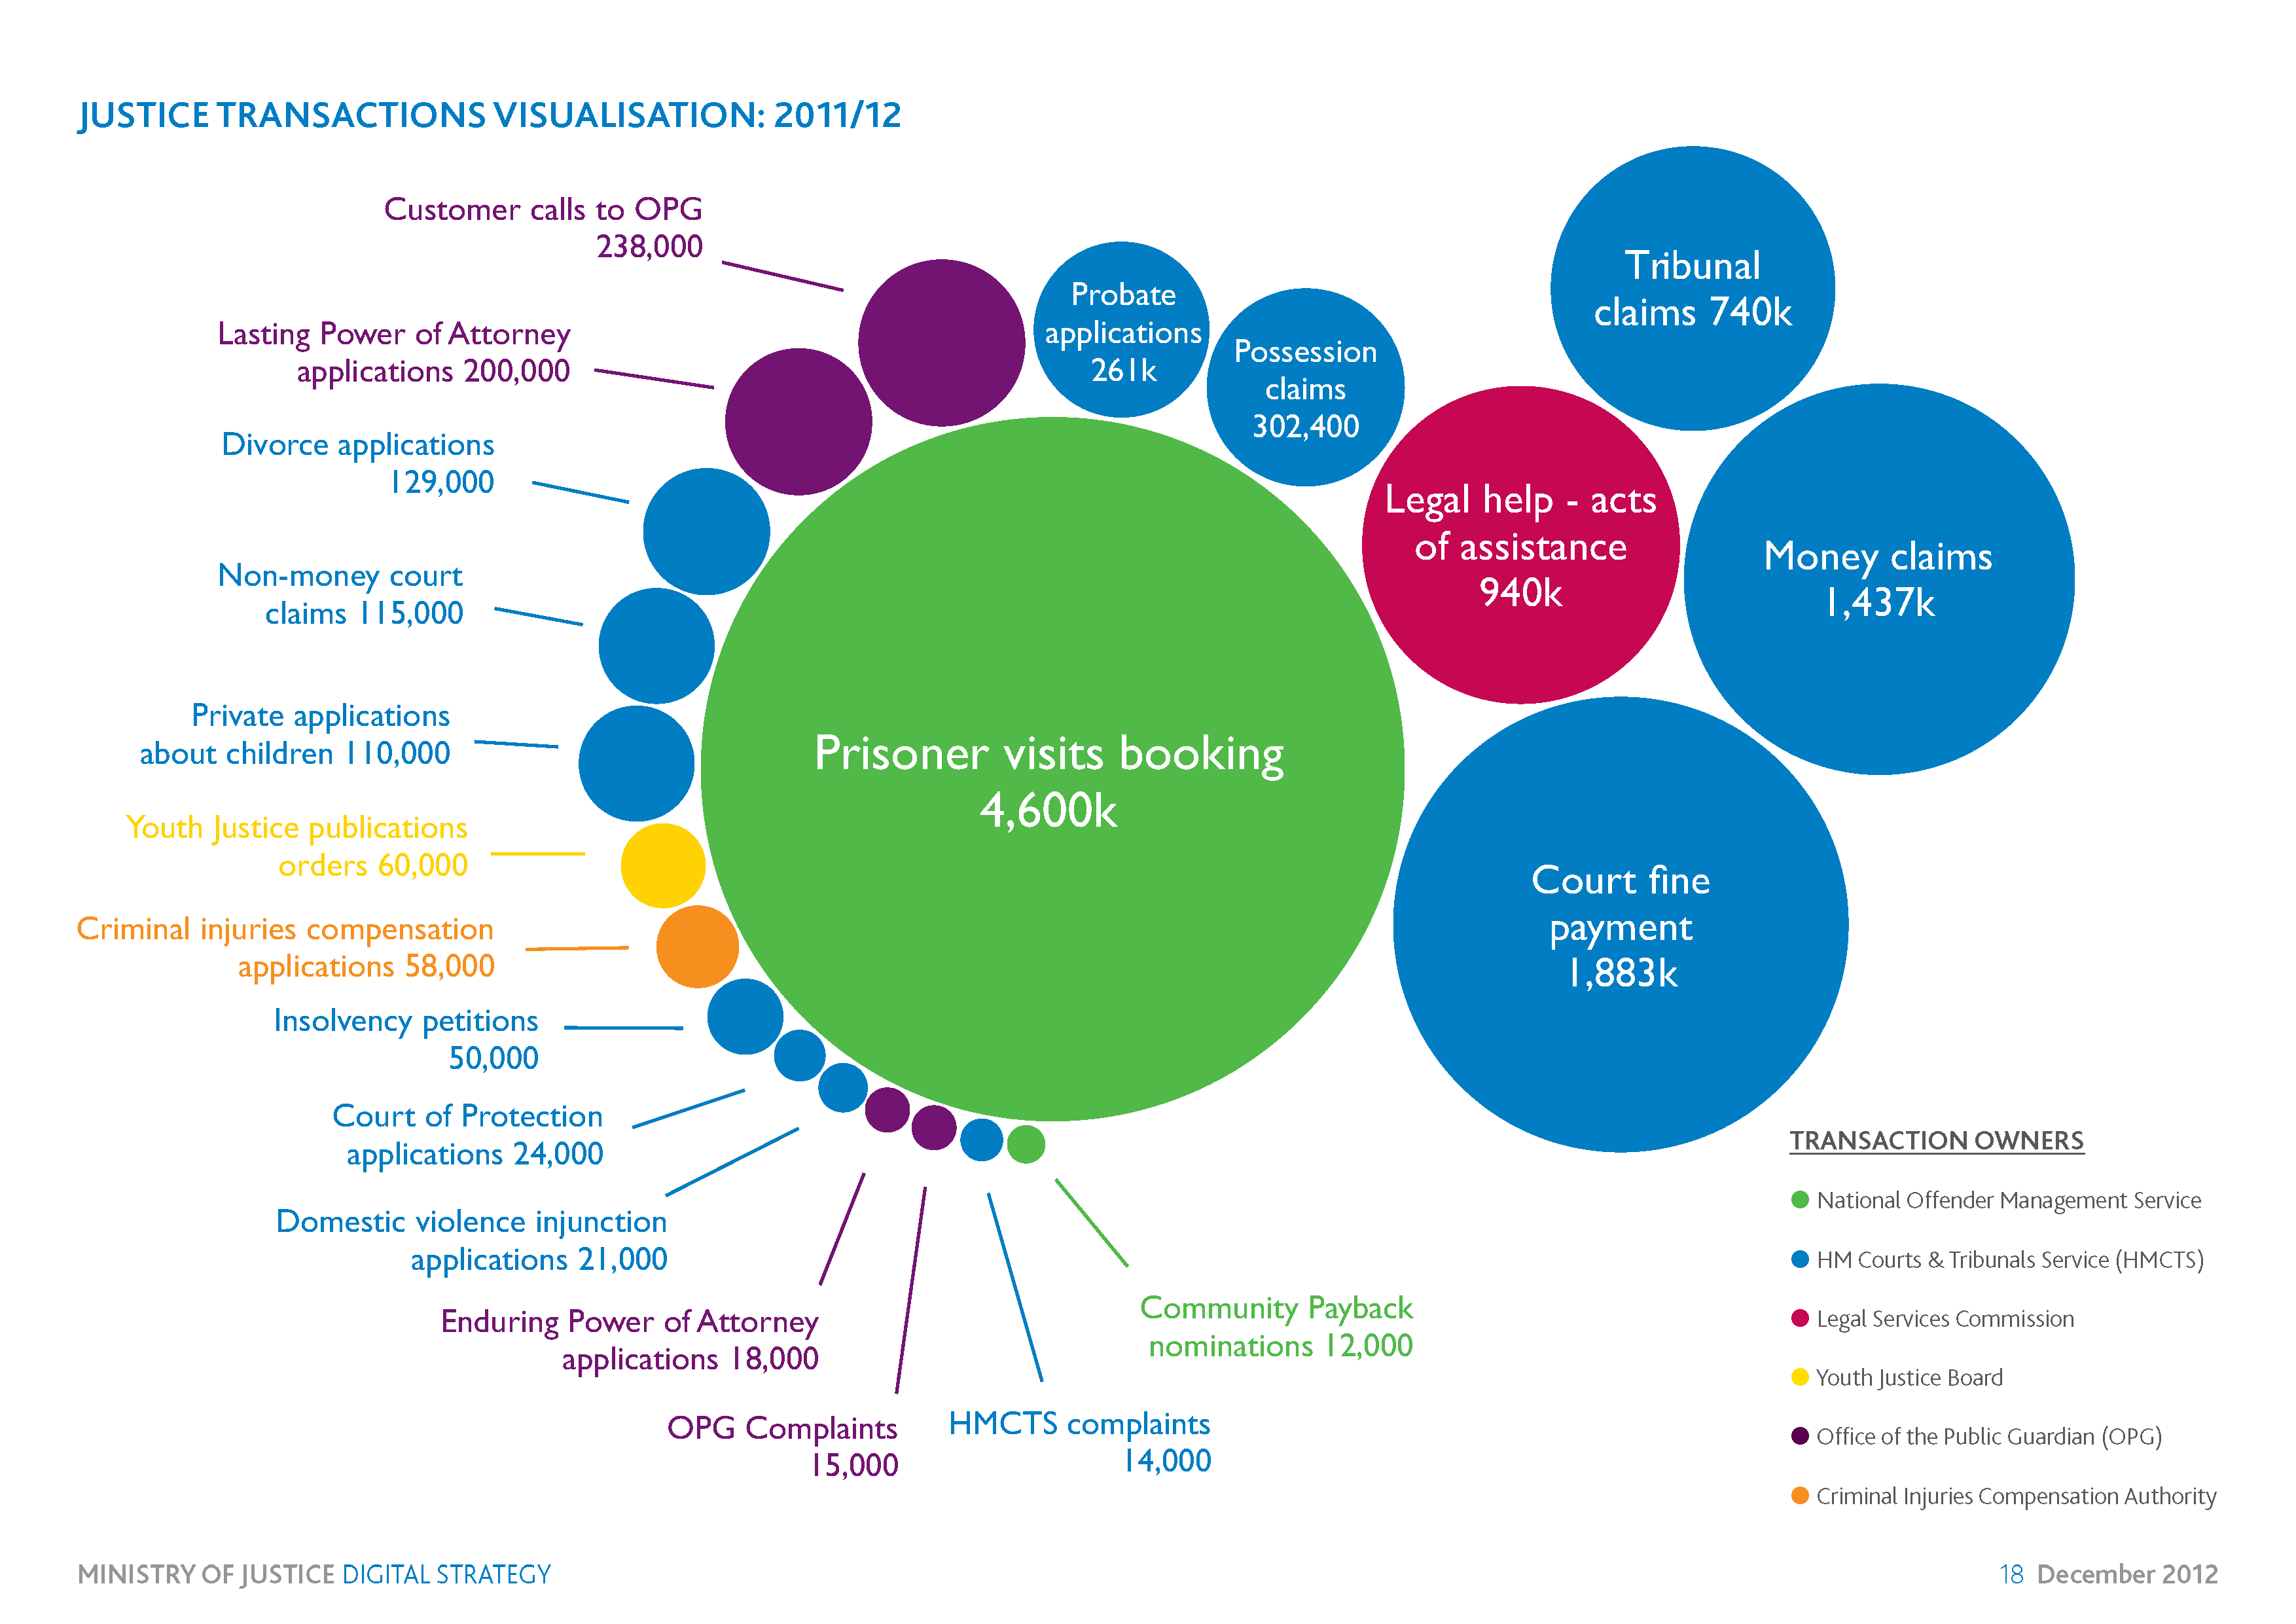 Justice Transactions Visualisation